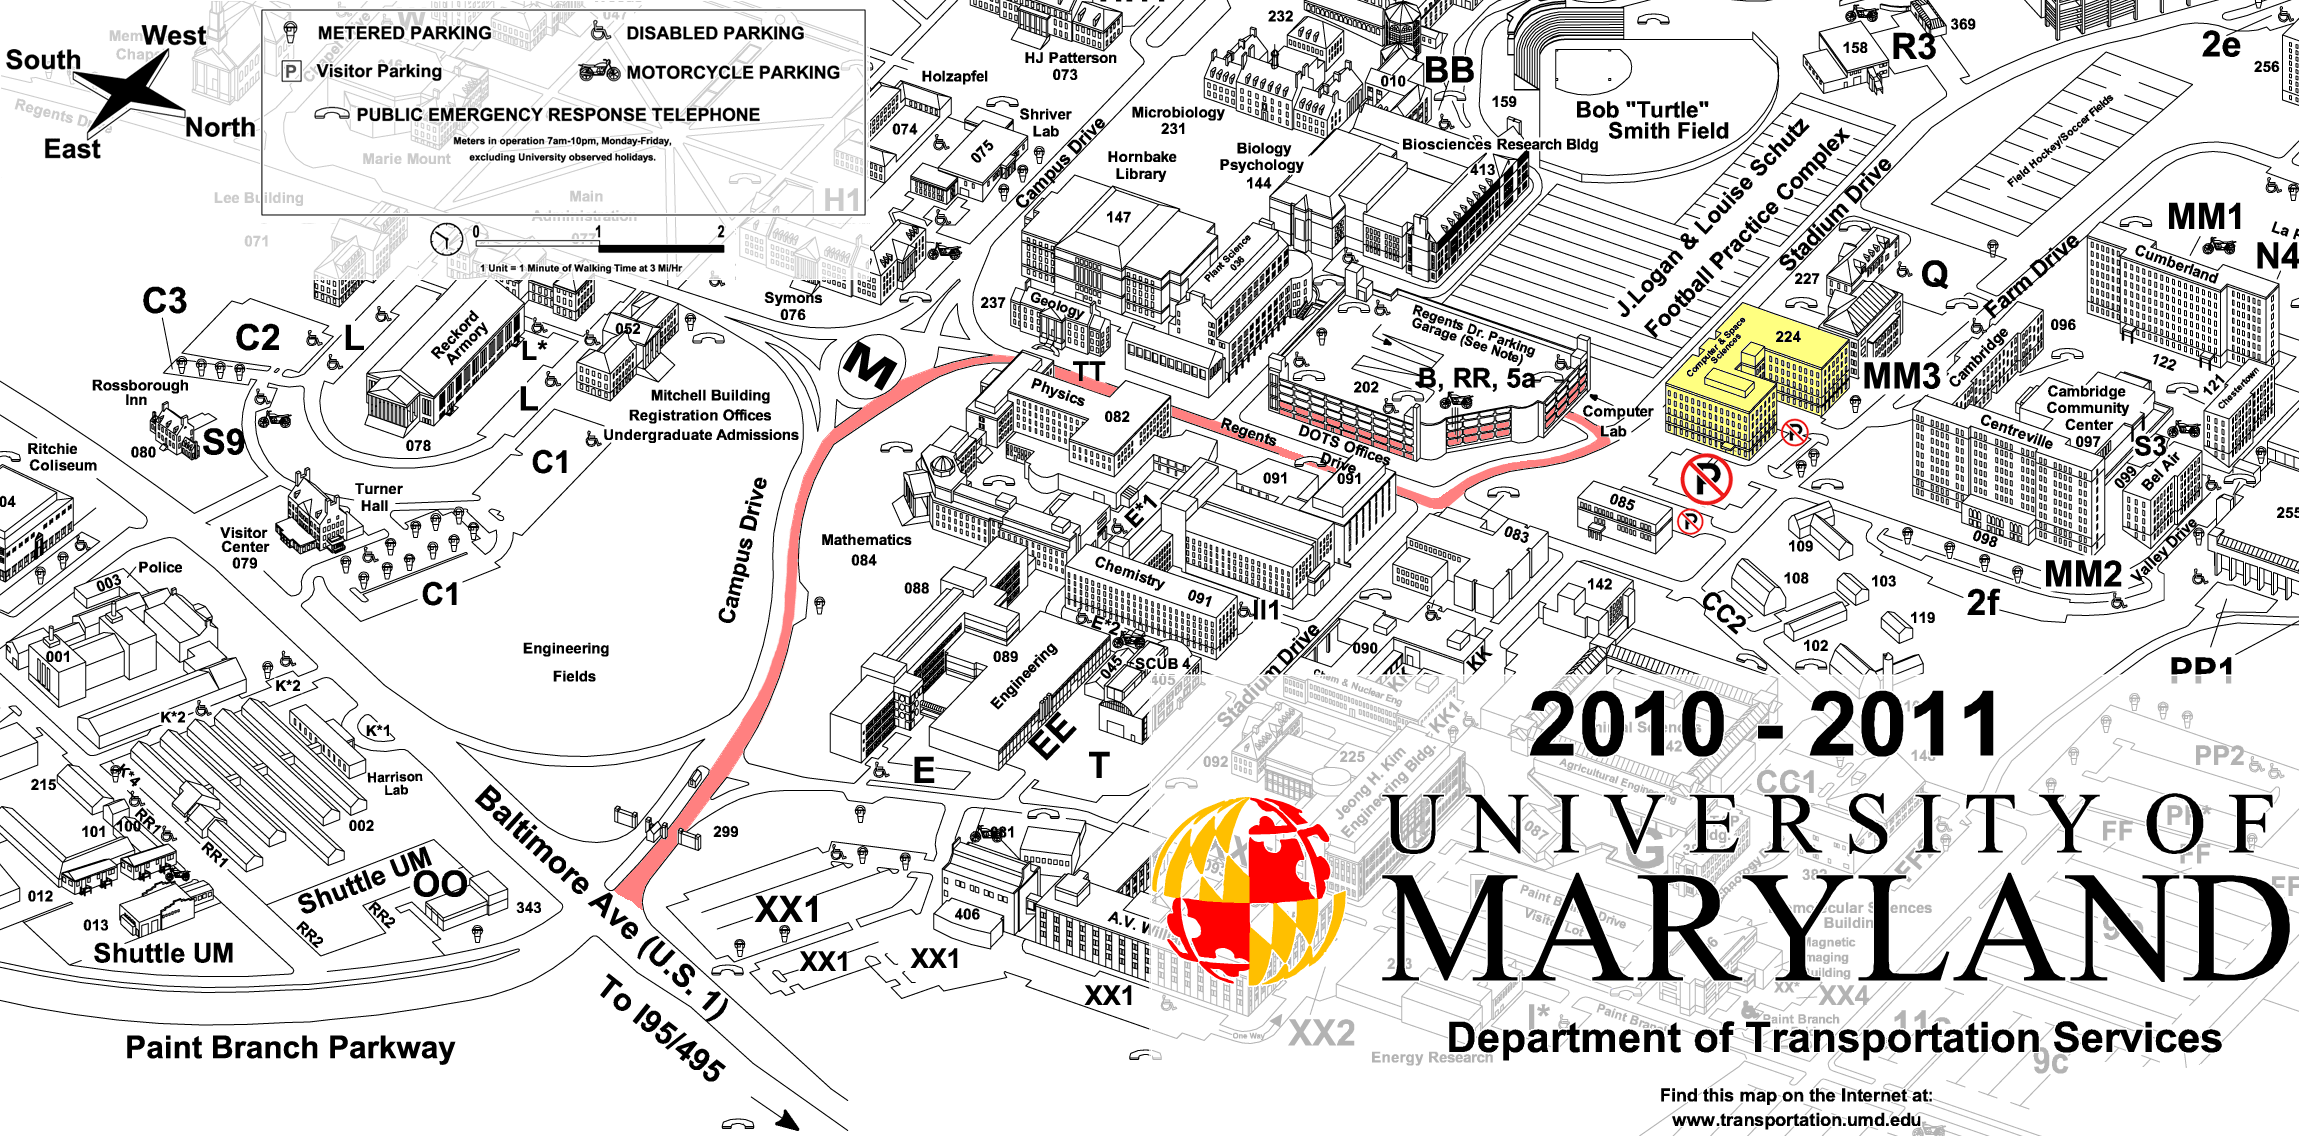 UMD Space Physics Group Maps